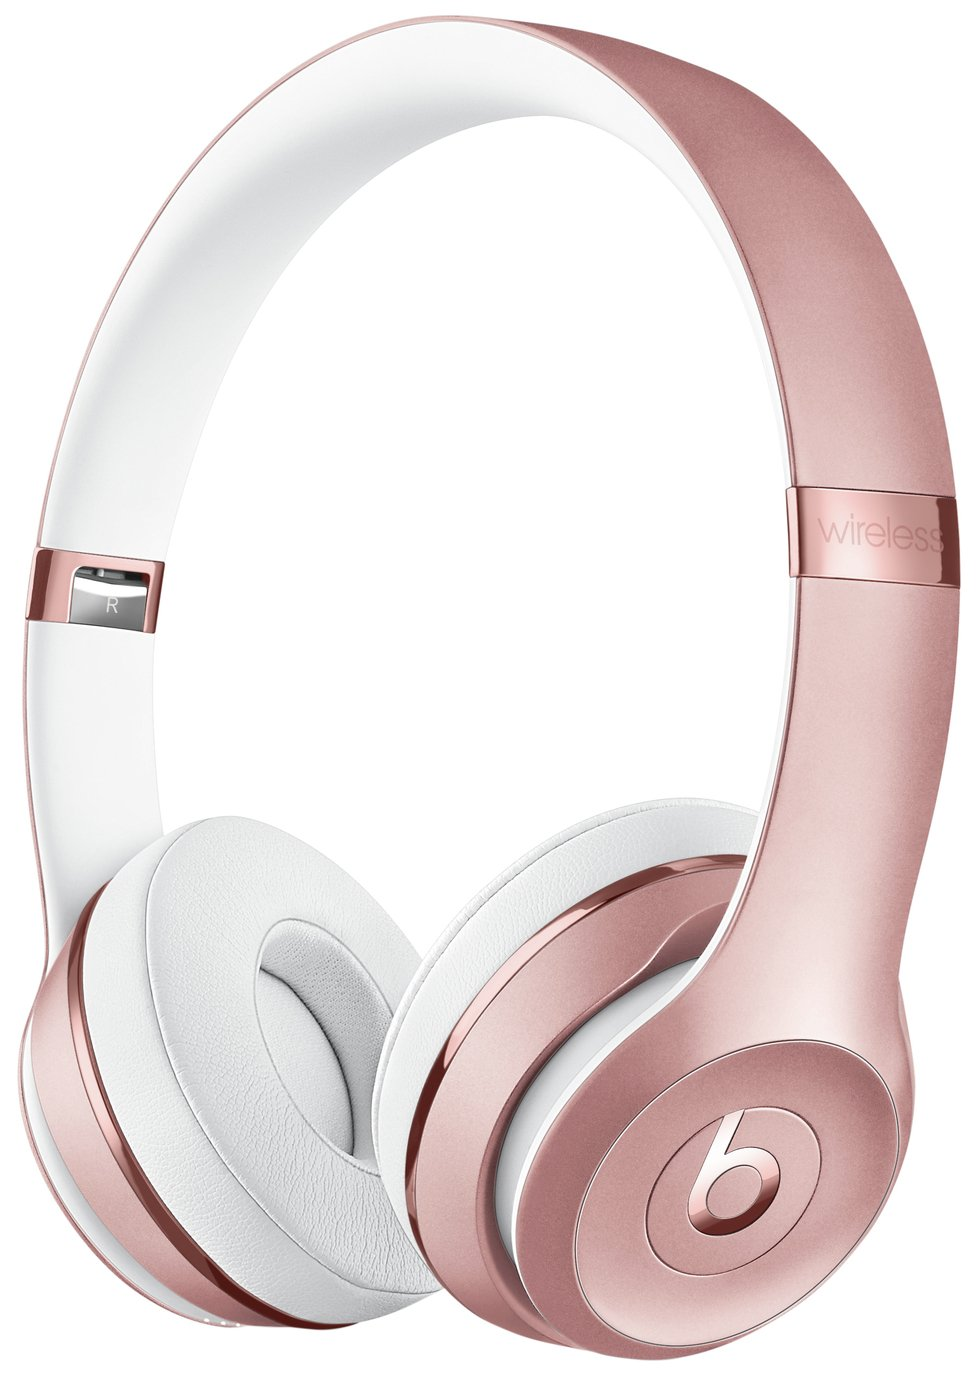 Beats by Dre Solo 3 On-Ear Wireless Headphones - Rose Gold from Beats